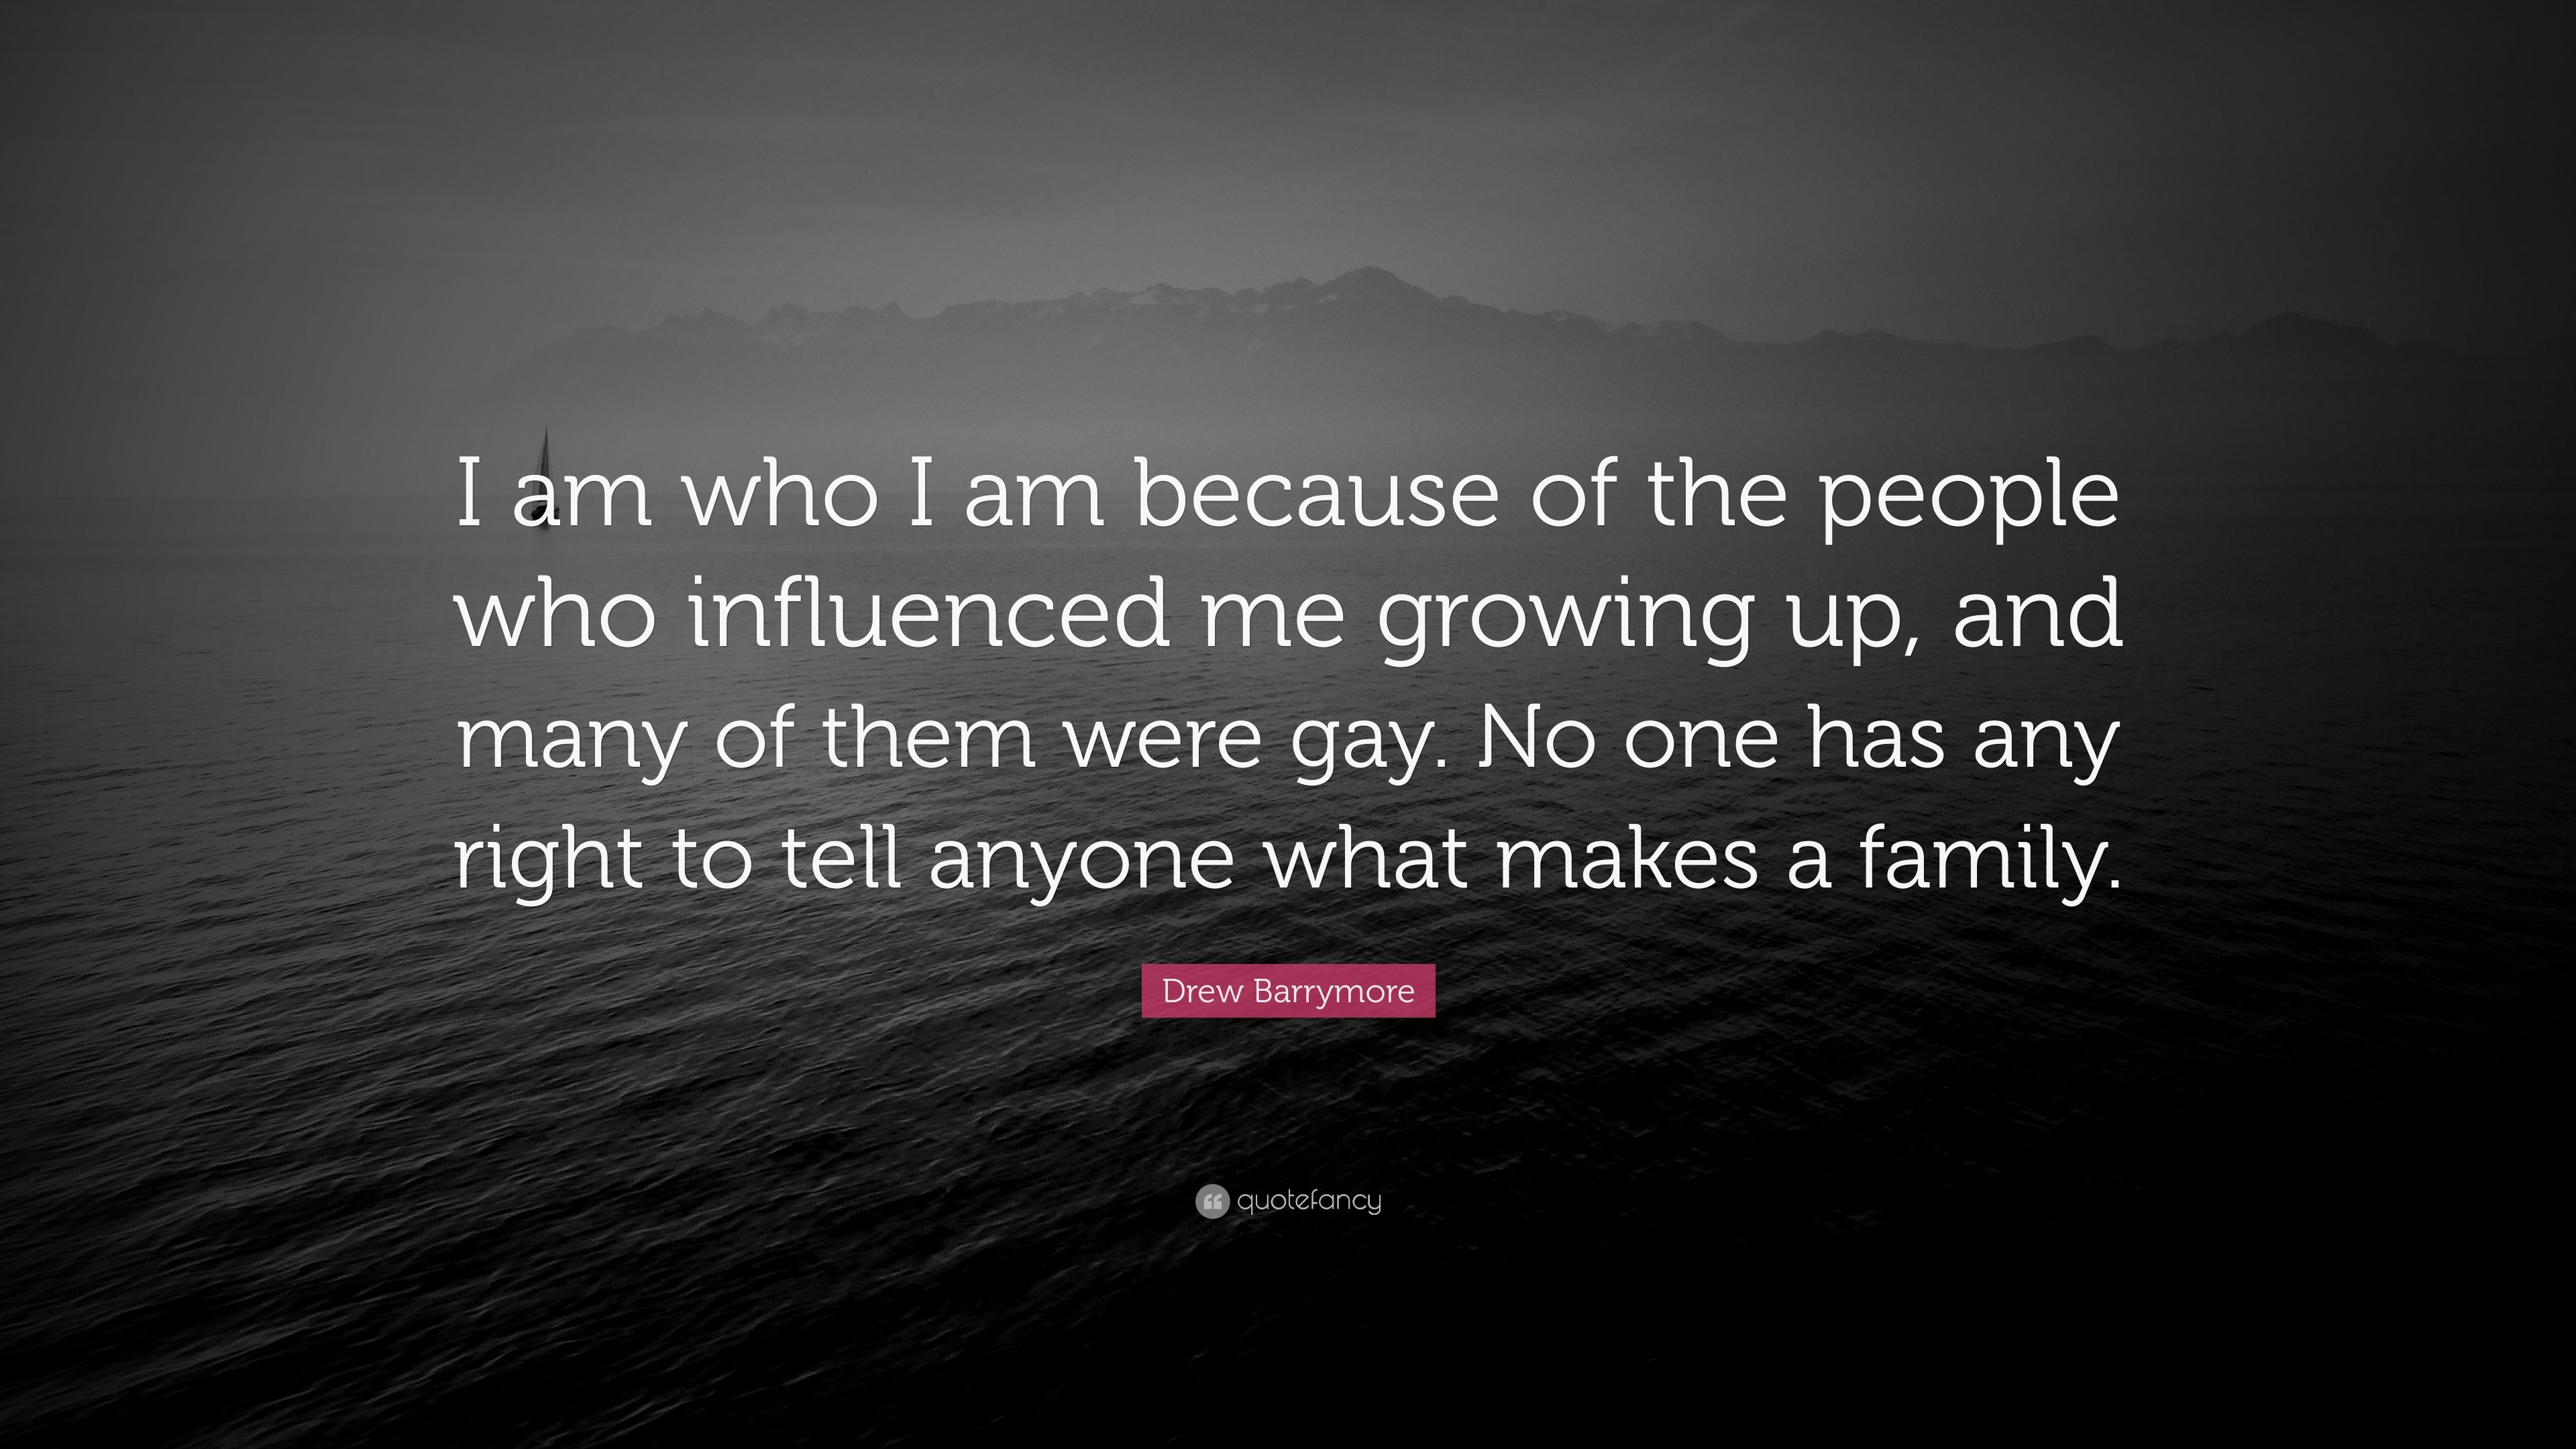 There is a saying that many gay men who grew